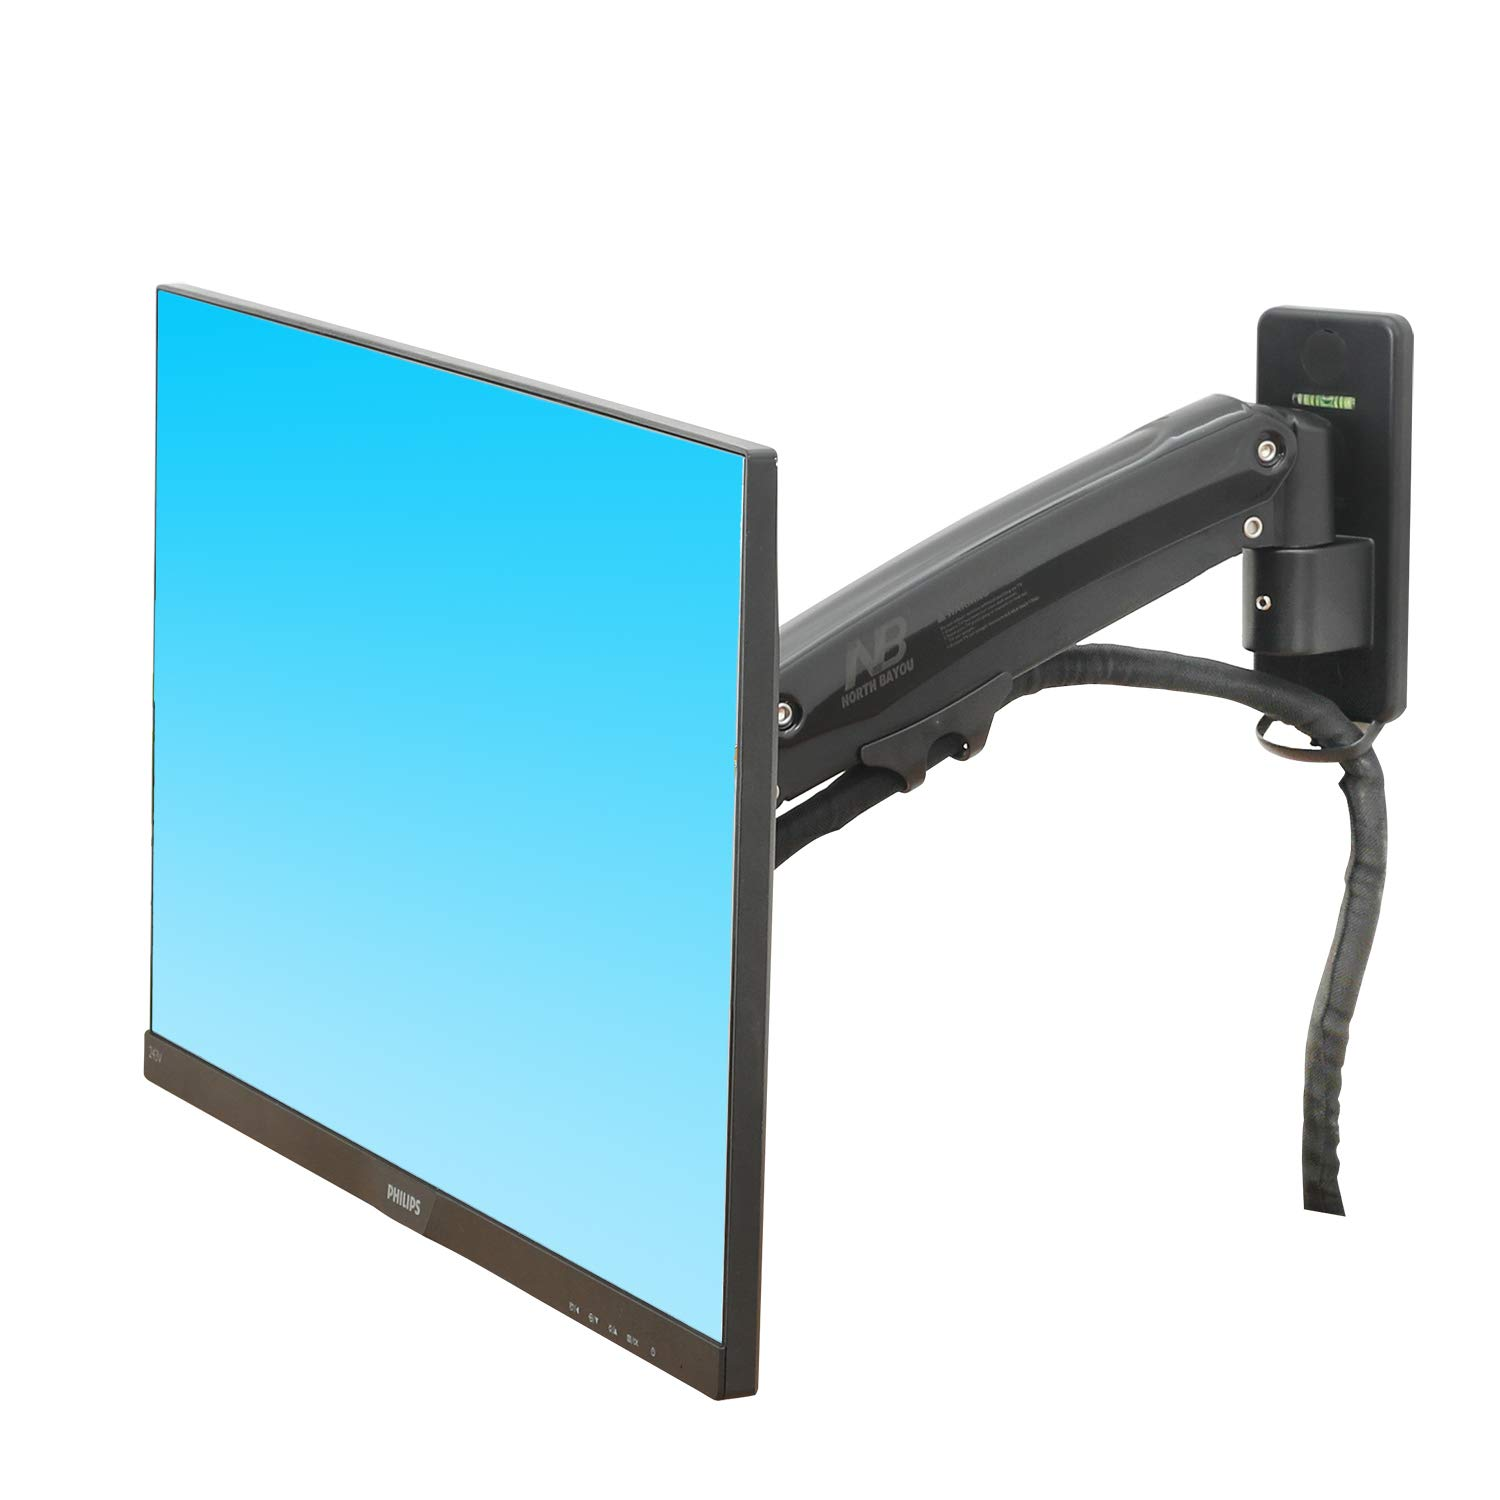 NB North Bayou Monitor TV Wall Mount Bracket LED LCD TV Mount Gas Strut Arm Fits 27''- 45'' Computer Monitors or TV Within 6.6lbs to 28.6 lbs